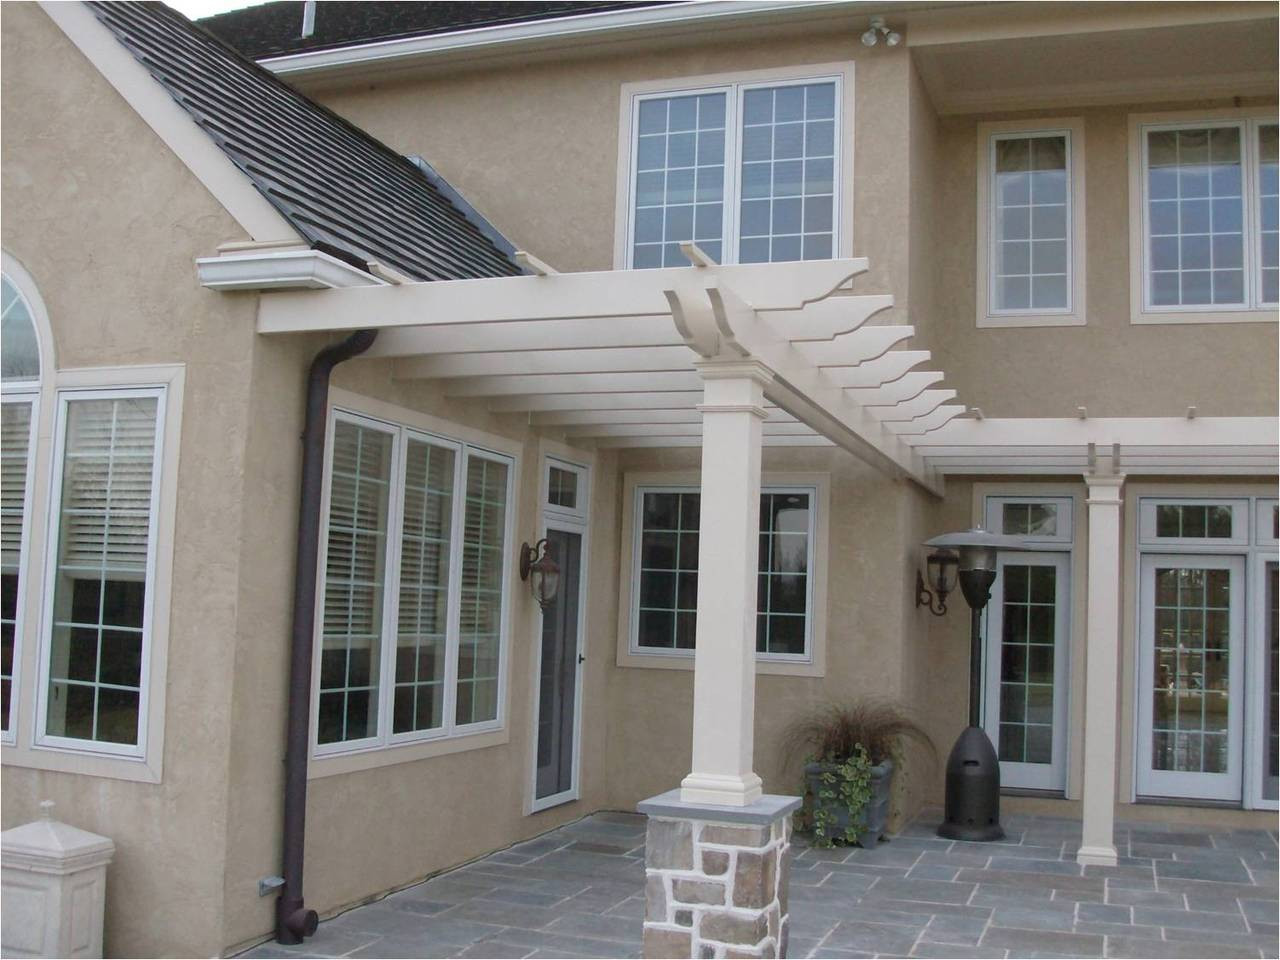 St. Lucia fiberglass pergola kit - custom job